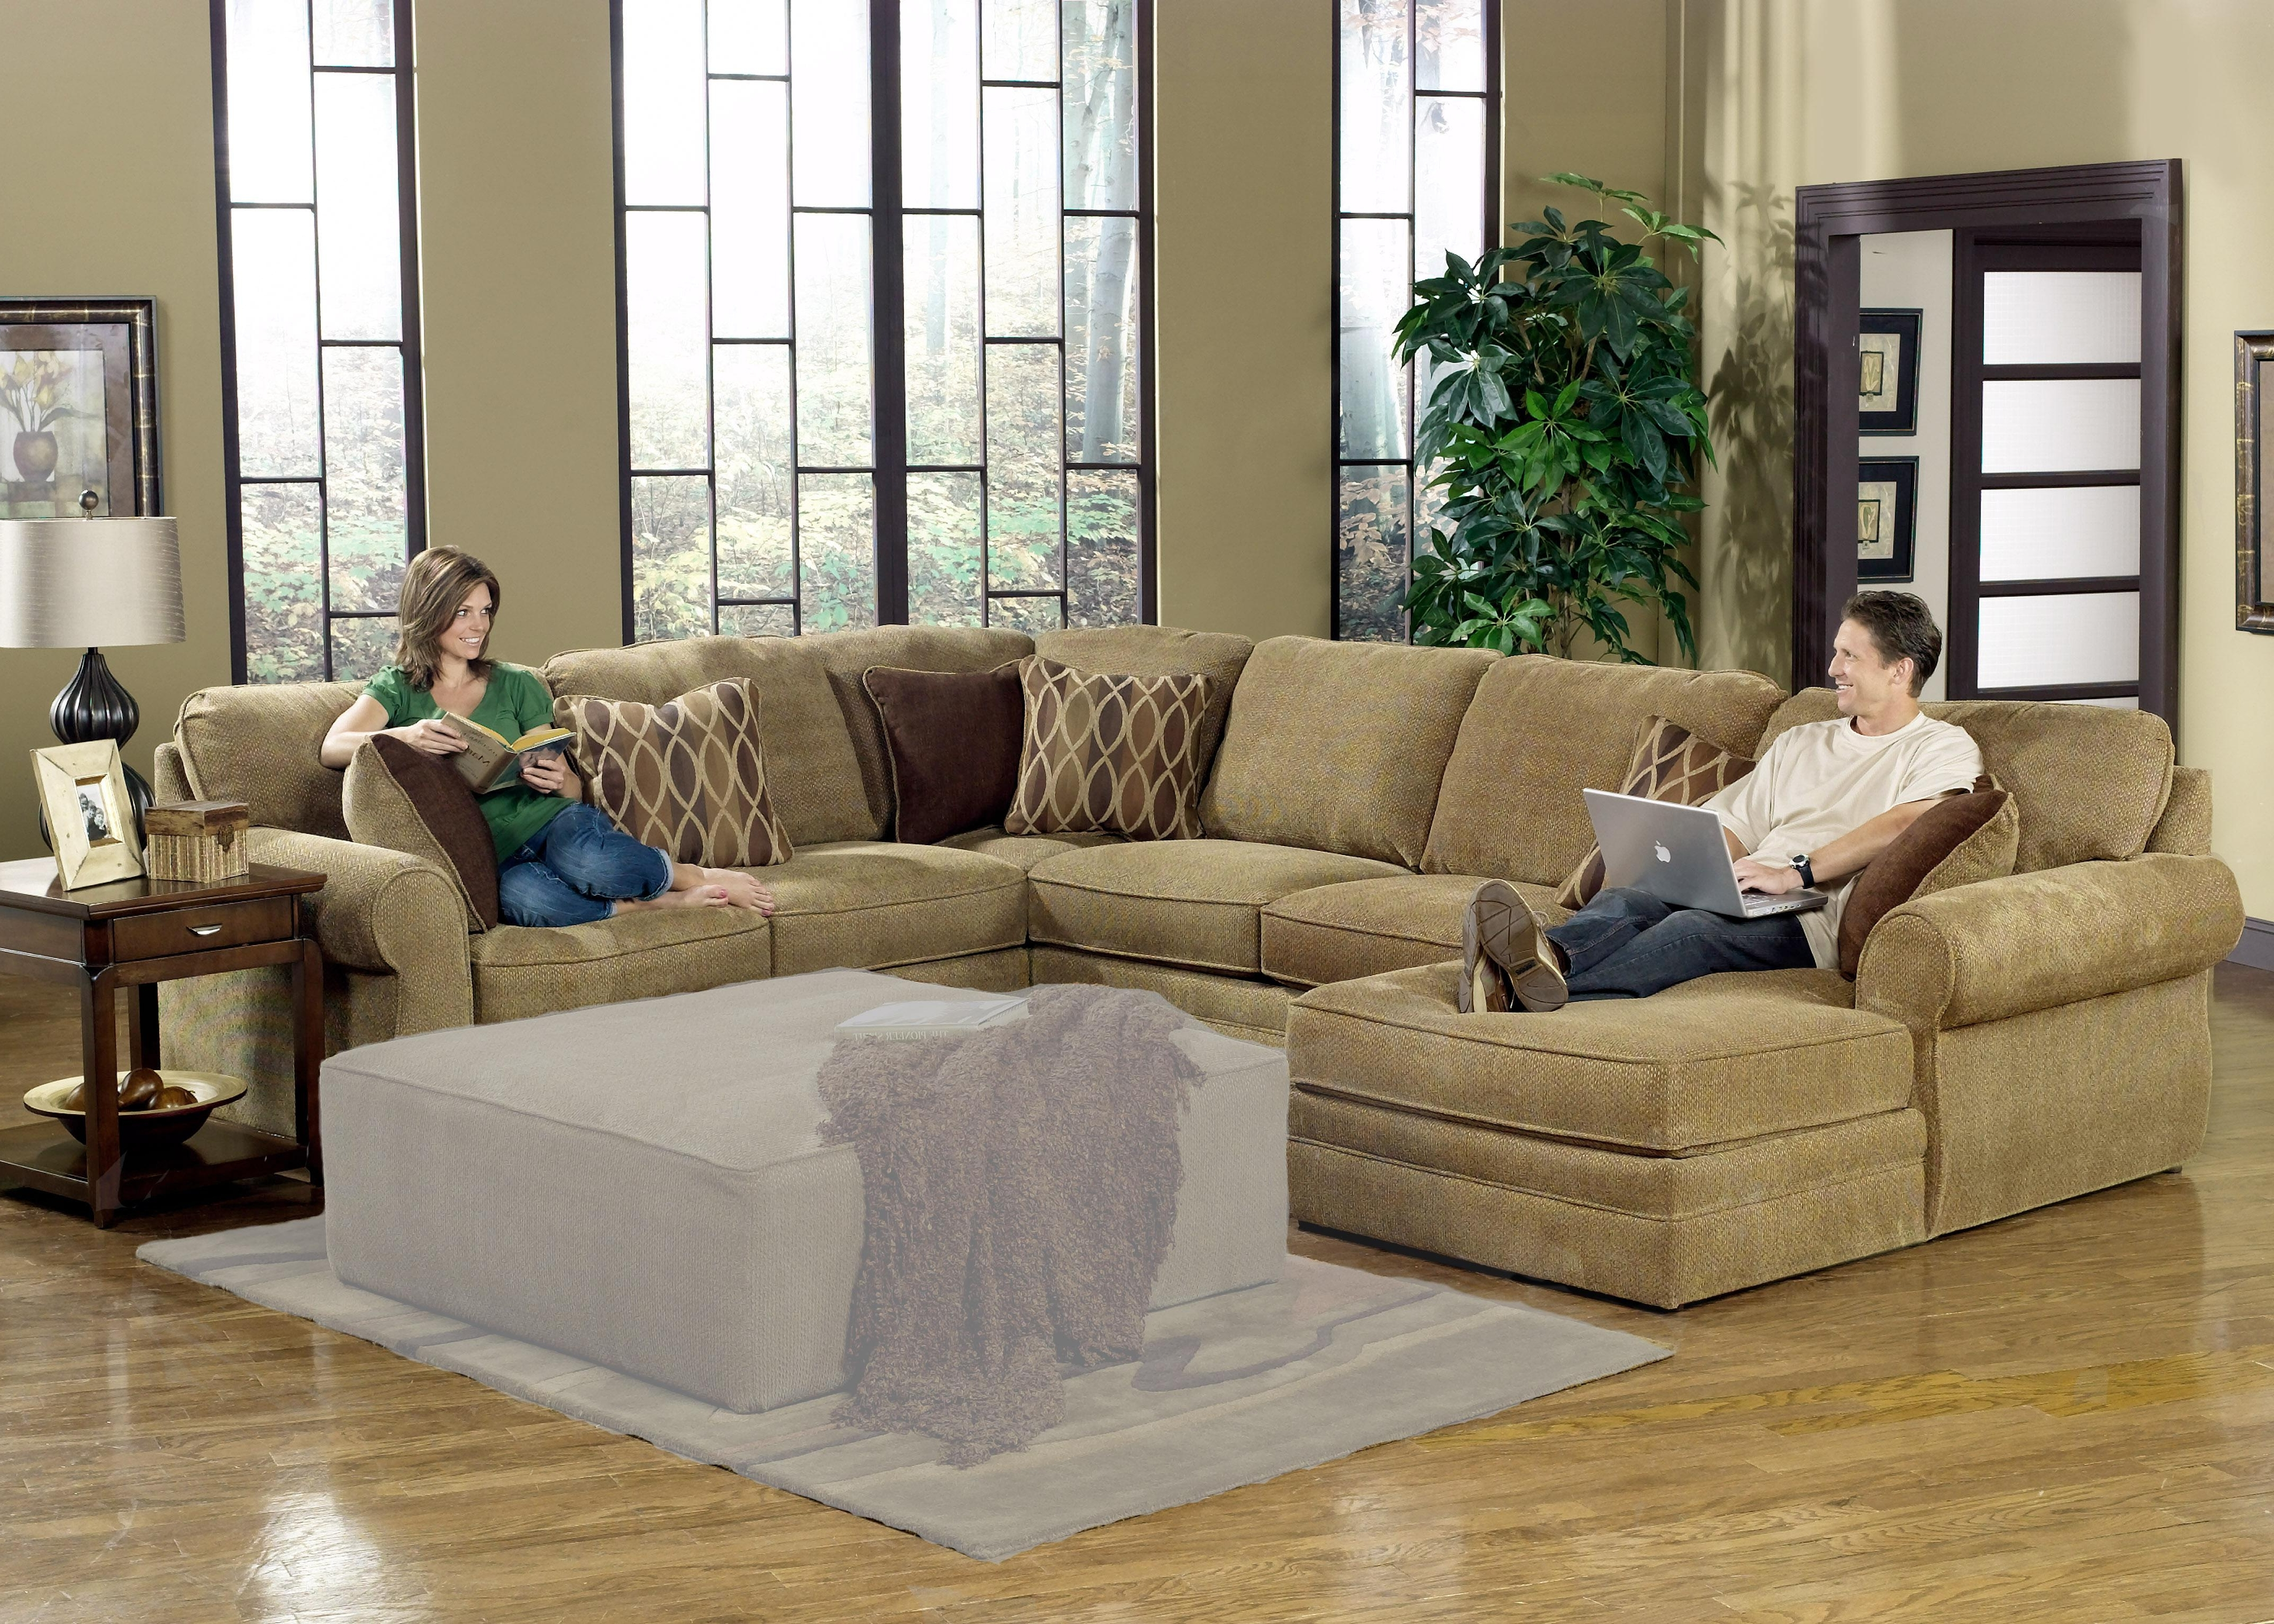 Preferred Long Couches With Chaise With Regard To Sectional Sofa Design: Adorable Large U Shaped Sectional Sofa (View 13 of 15)